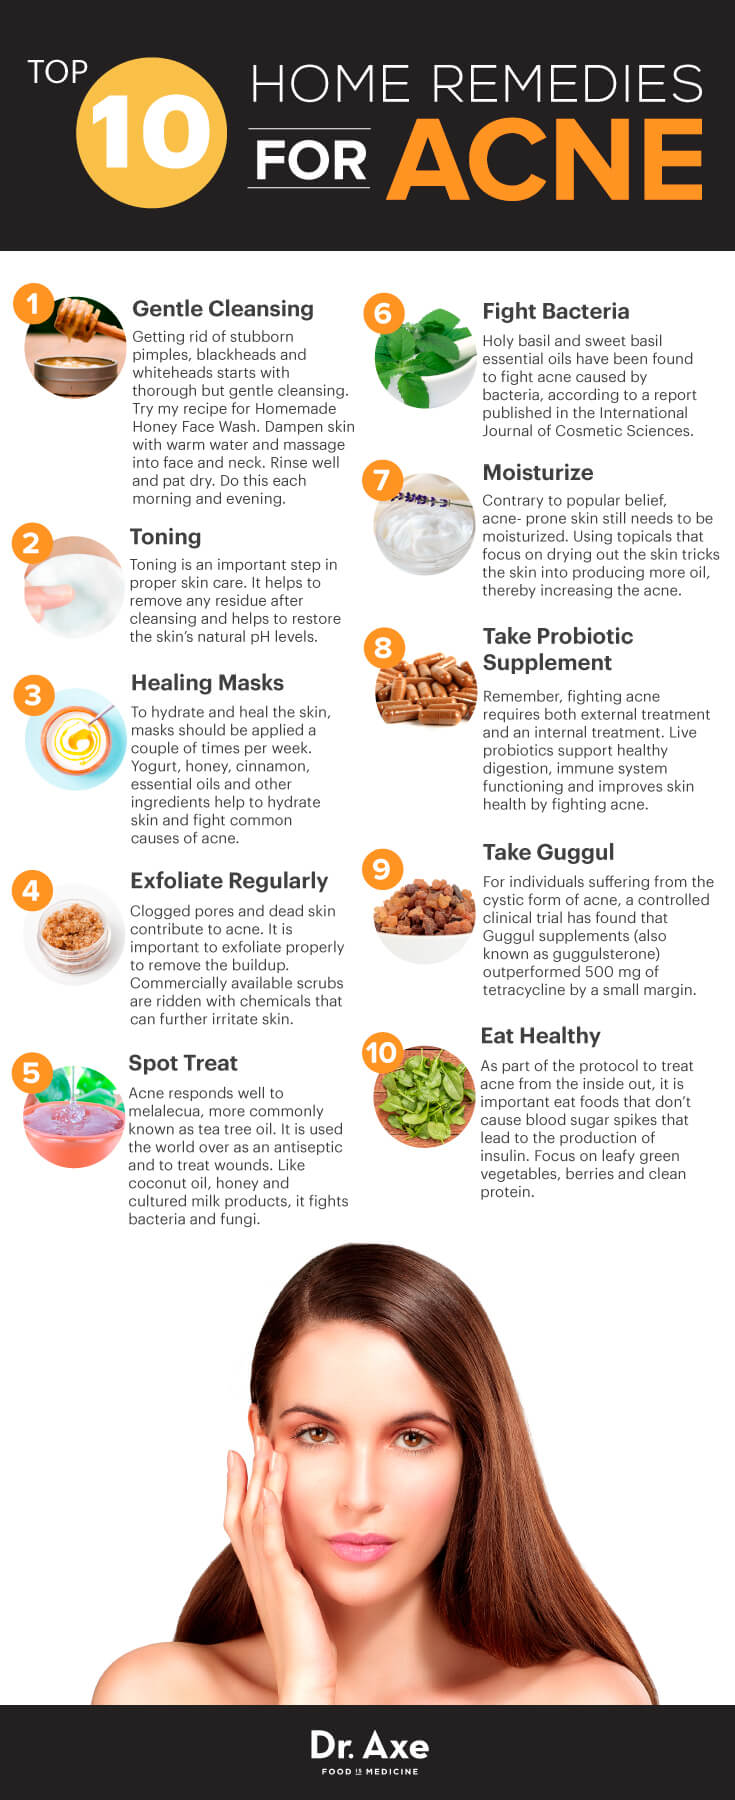 10 Healthy home remedies for acne